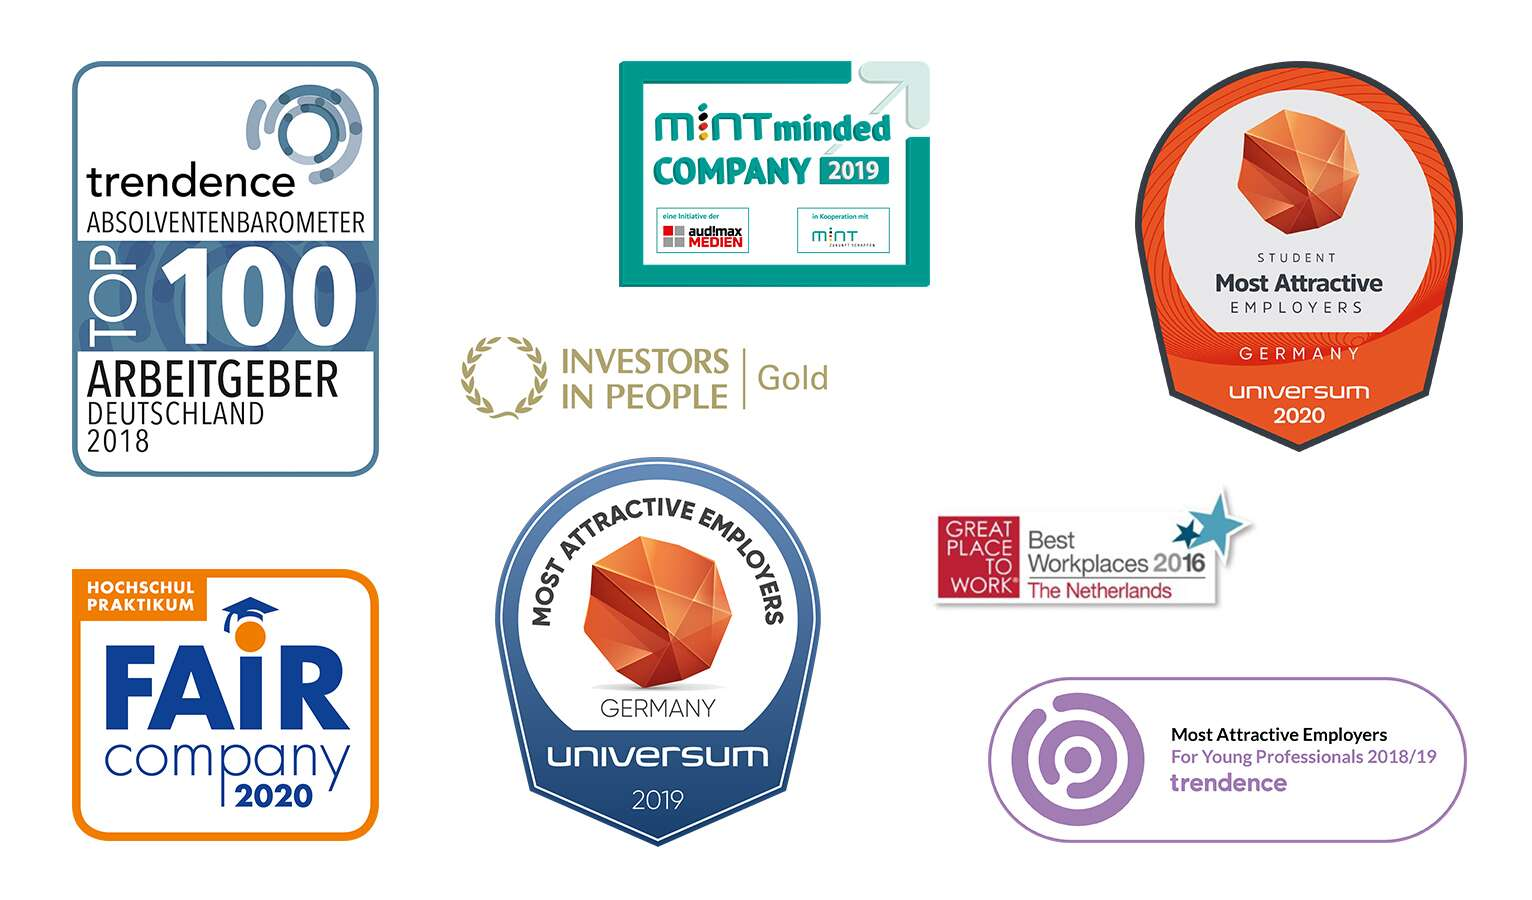 Our latest accolades